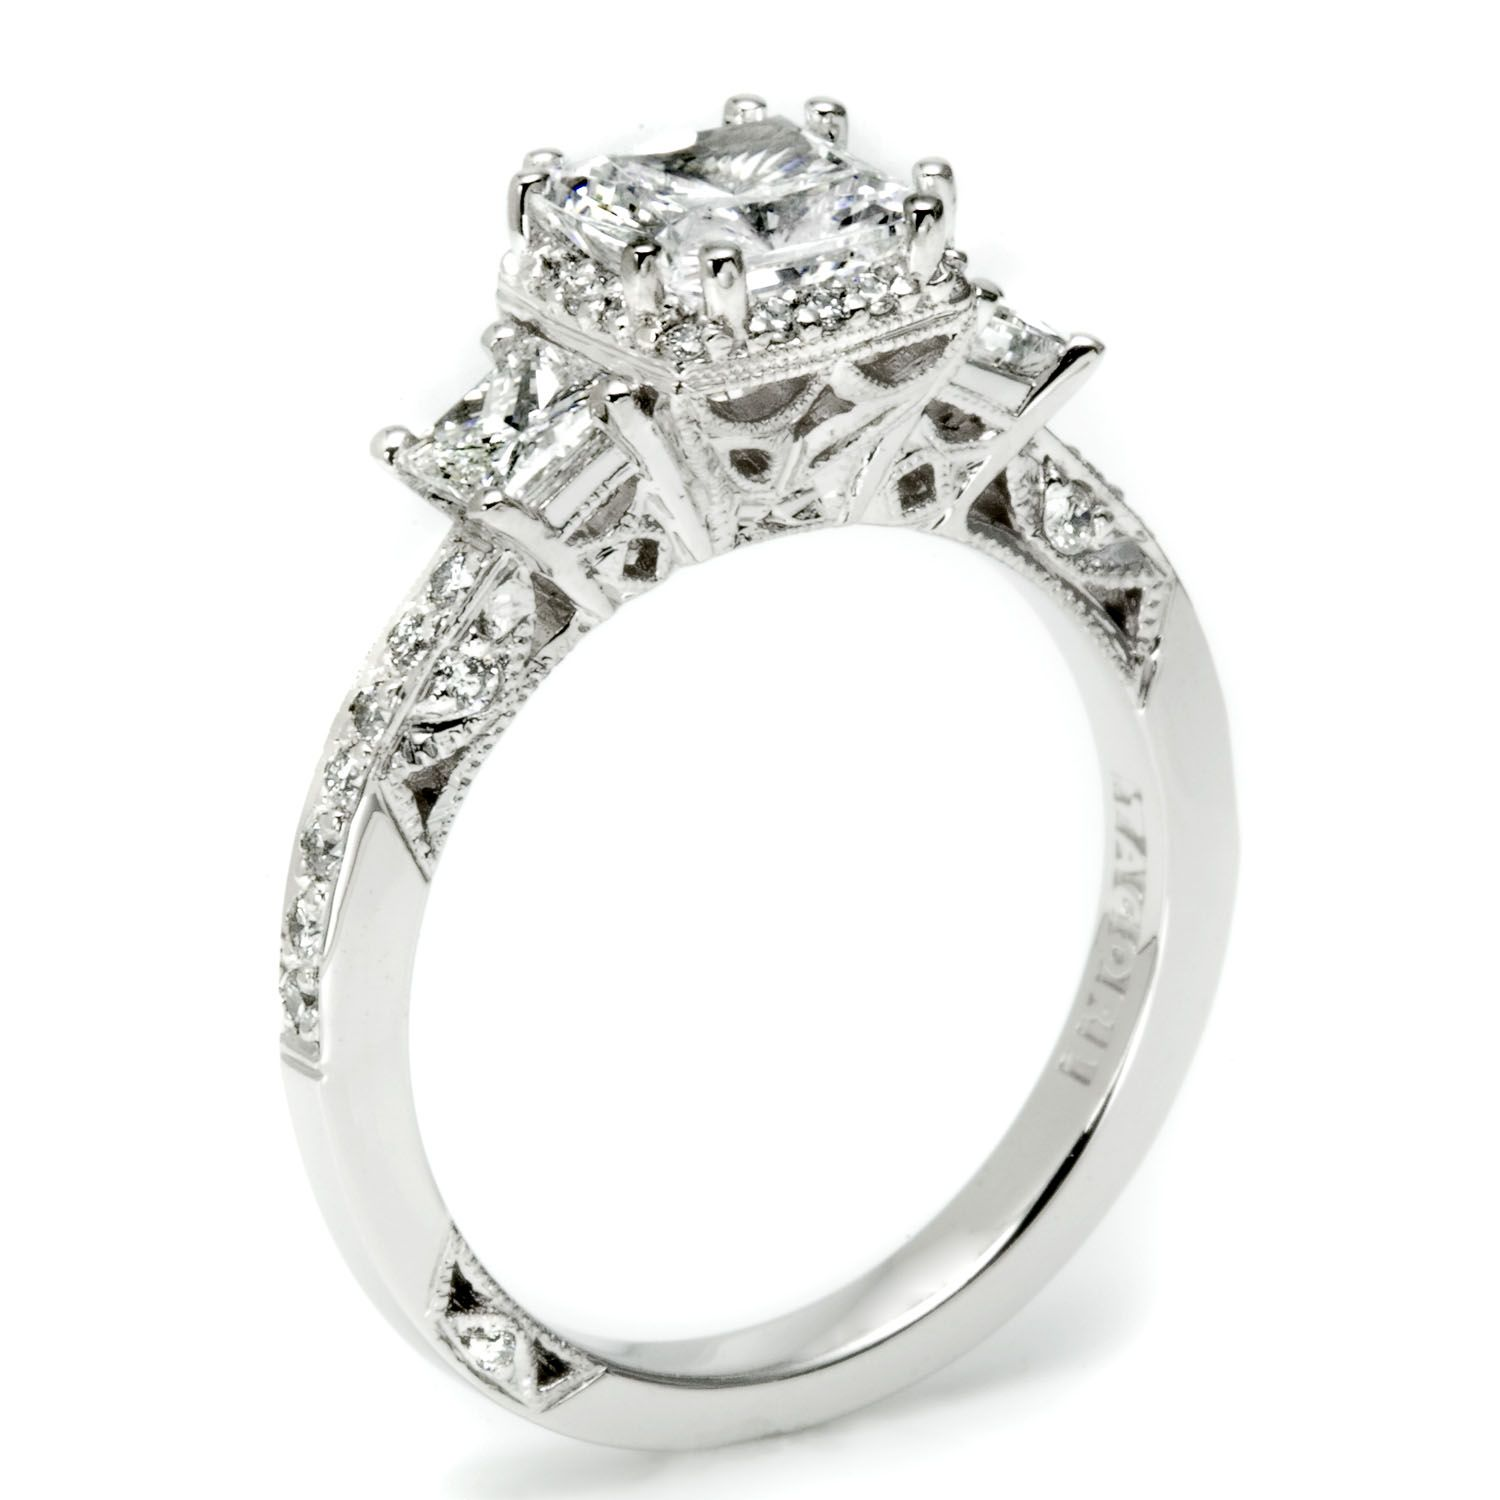 Vintage wedding ring sets free image